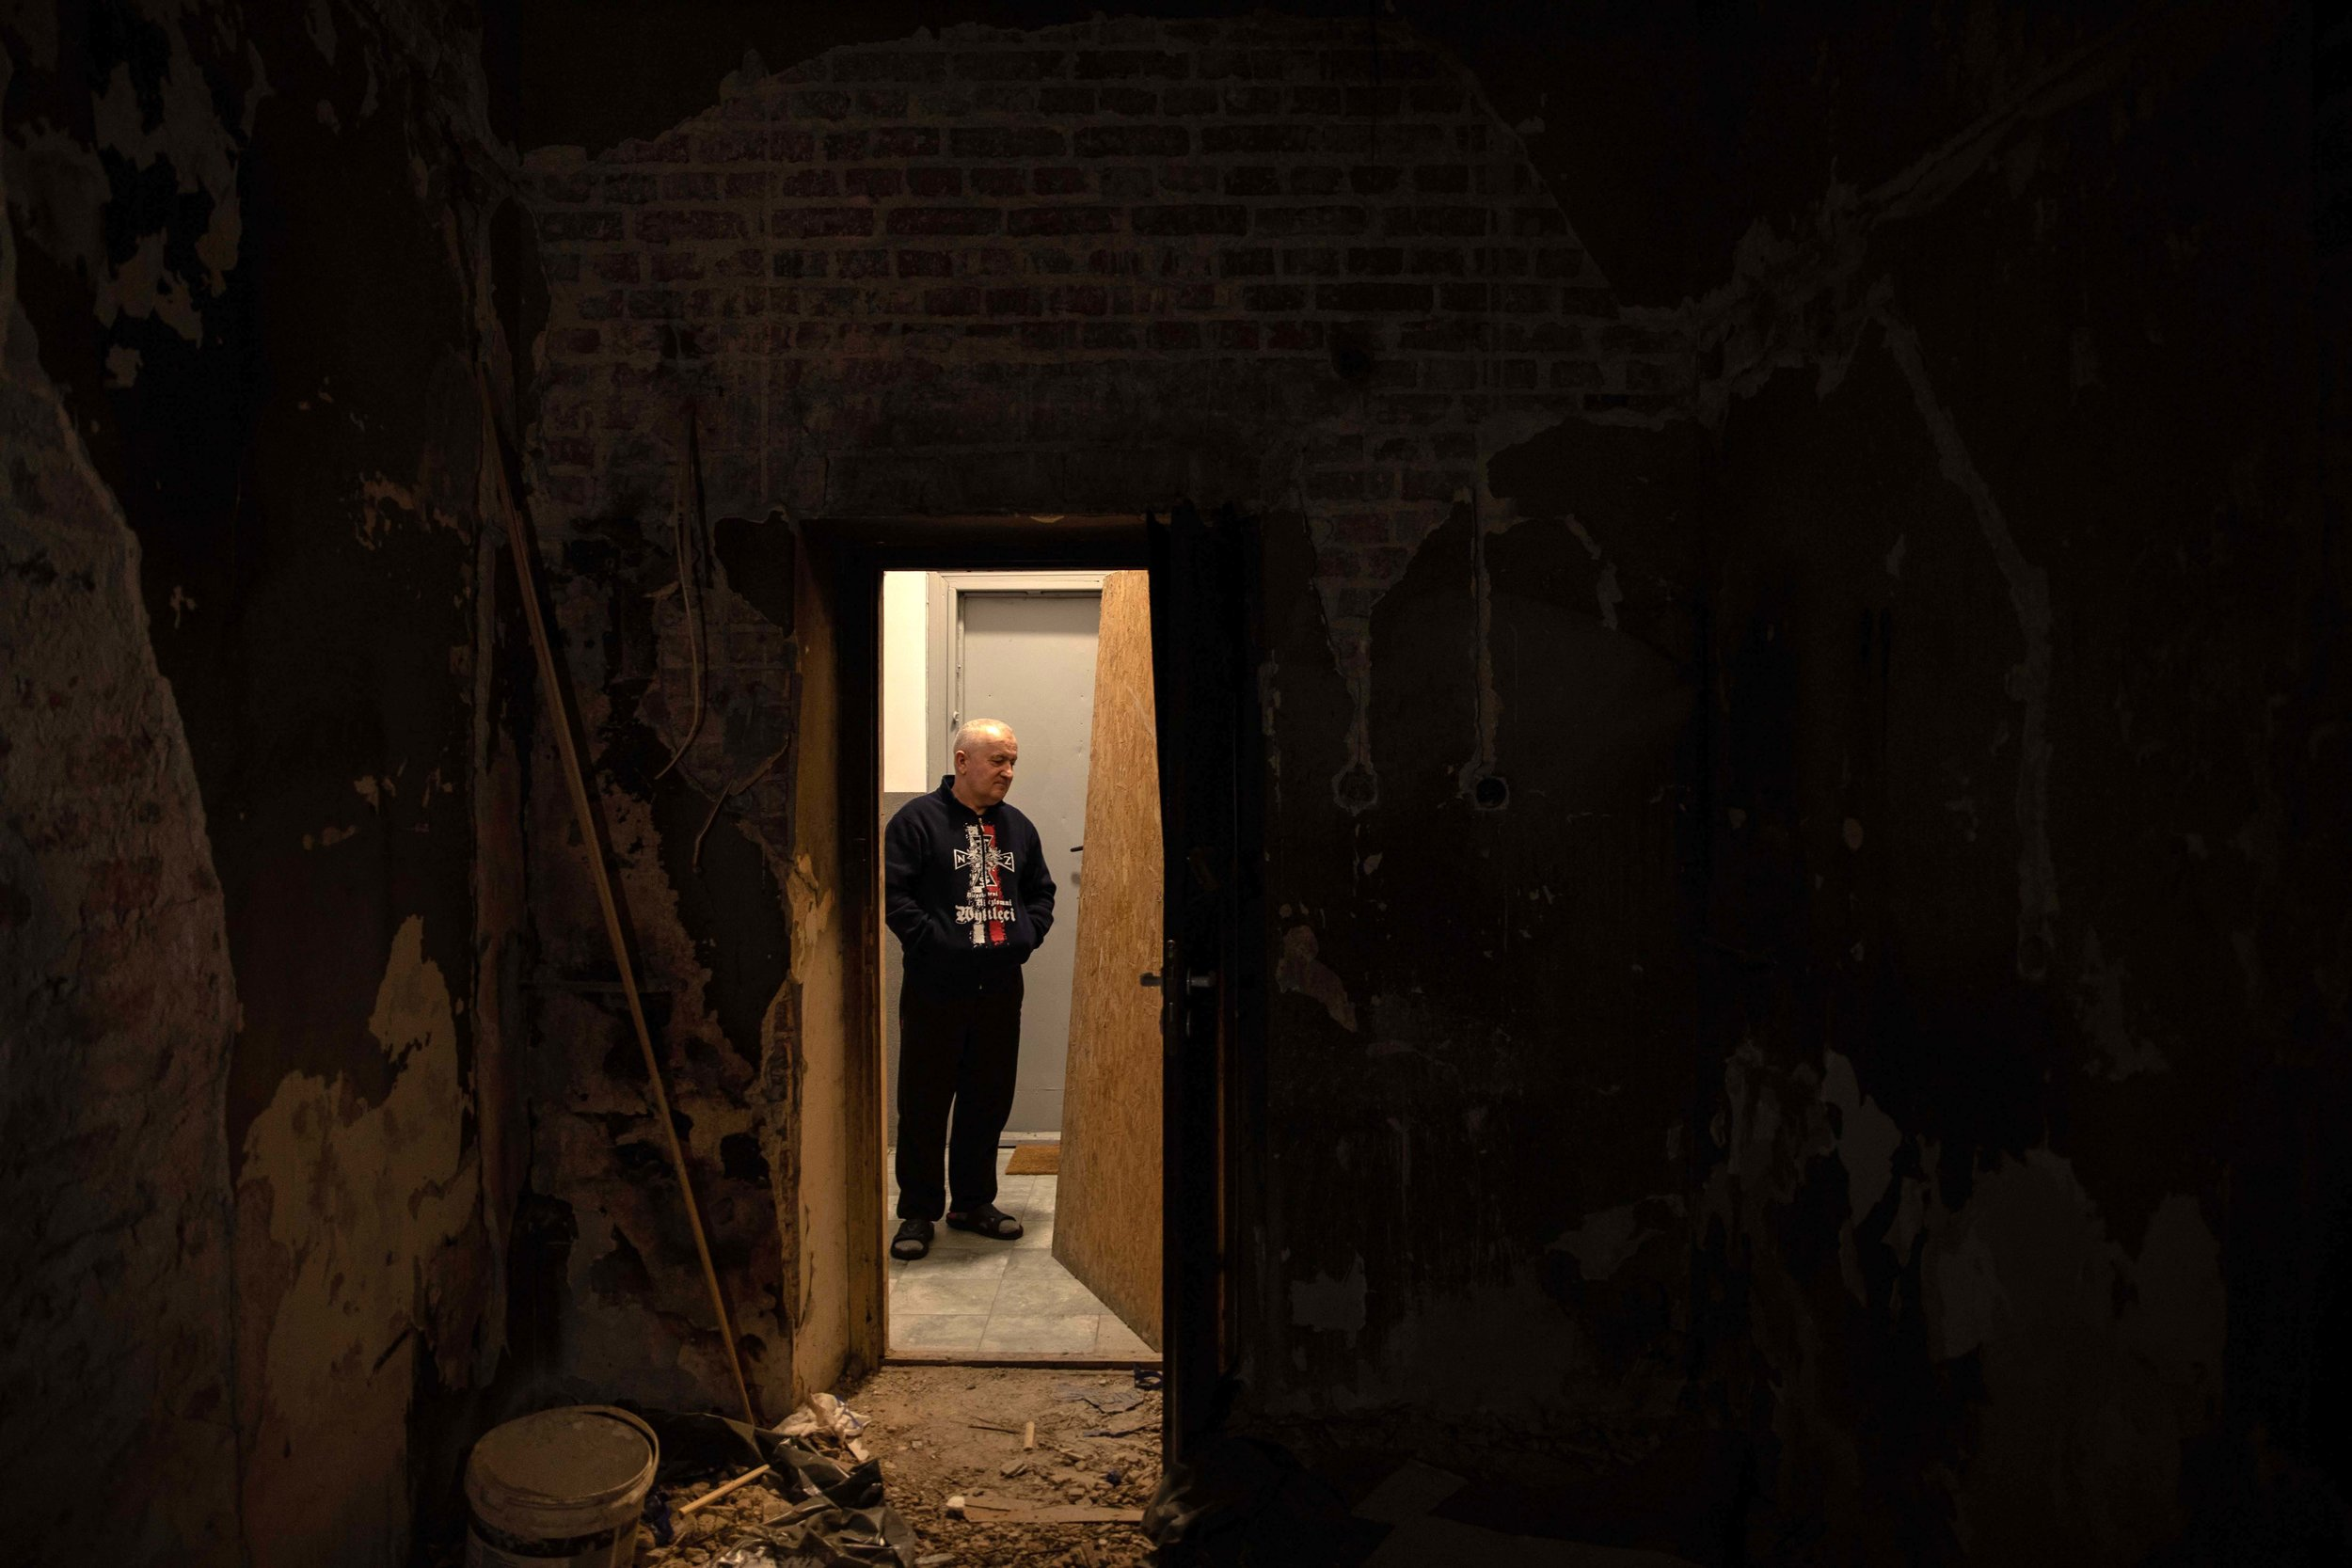 WARSAW • Stanislaw, a friend, stands in the hall of the flat Ryszard Kowalski moved into in the 1970s with his wife and her parents. Forty years on, nothing has been done to improve the building.